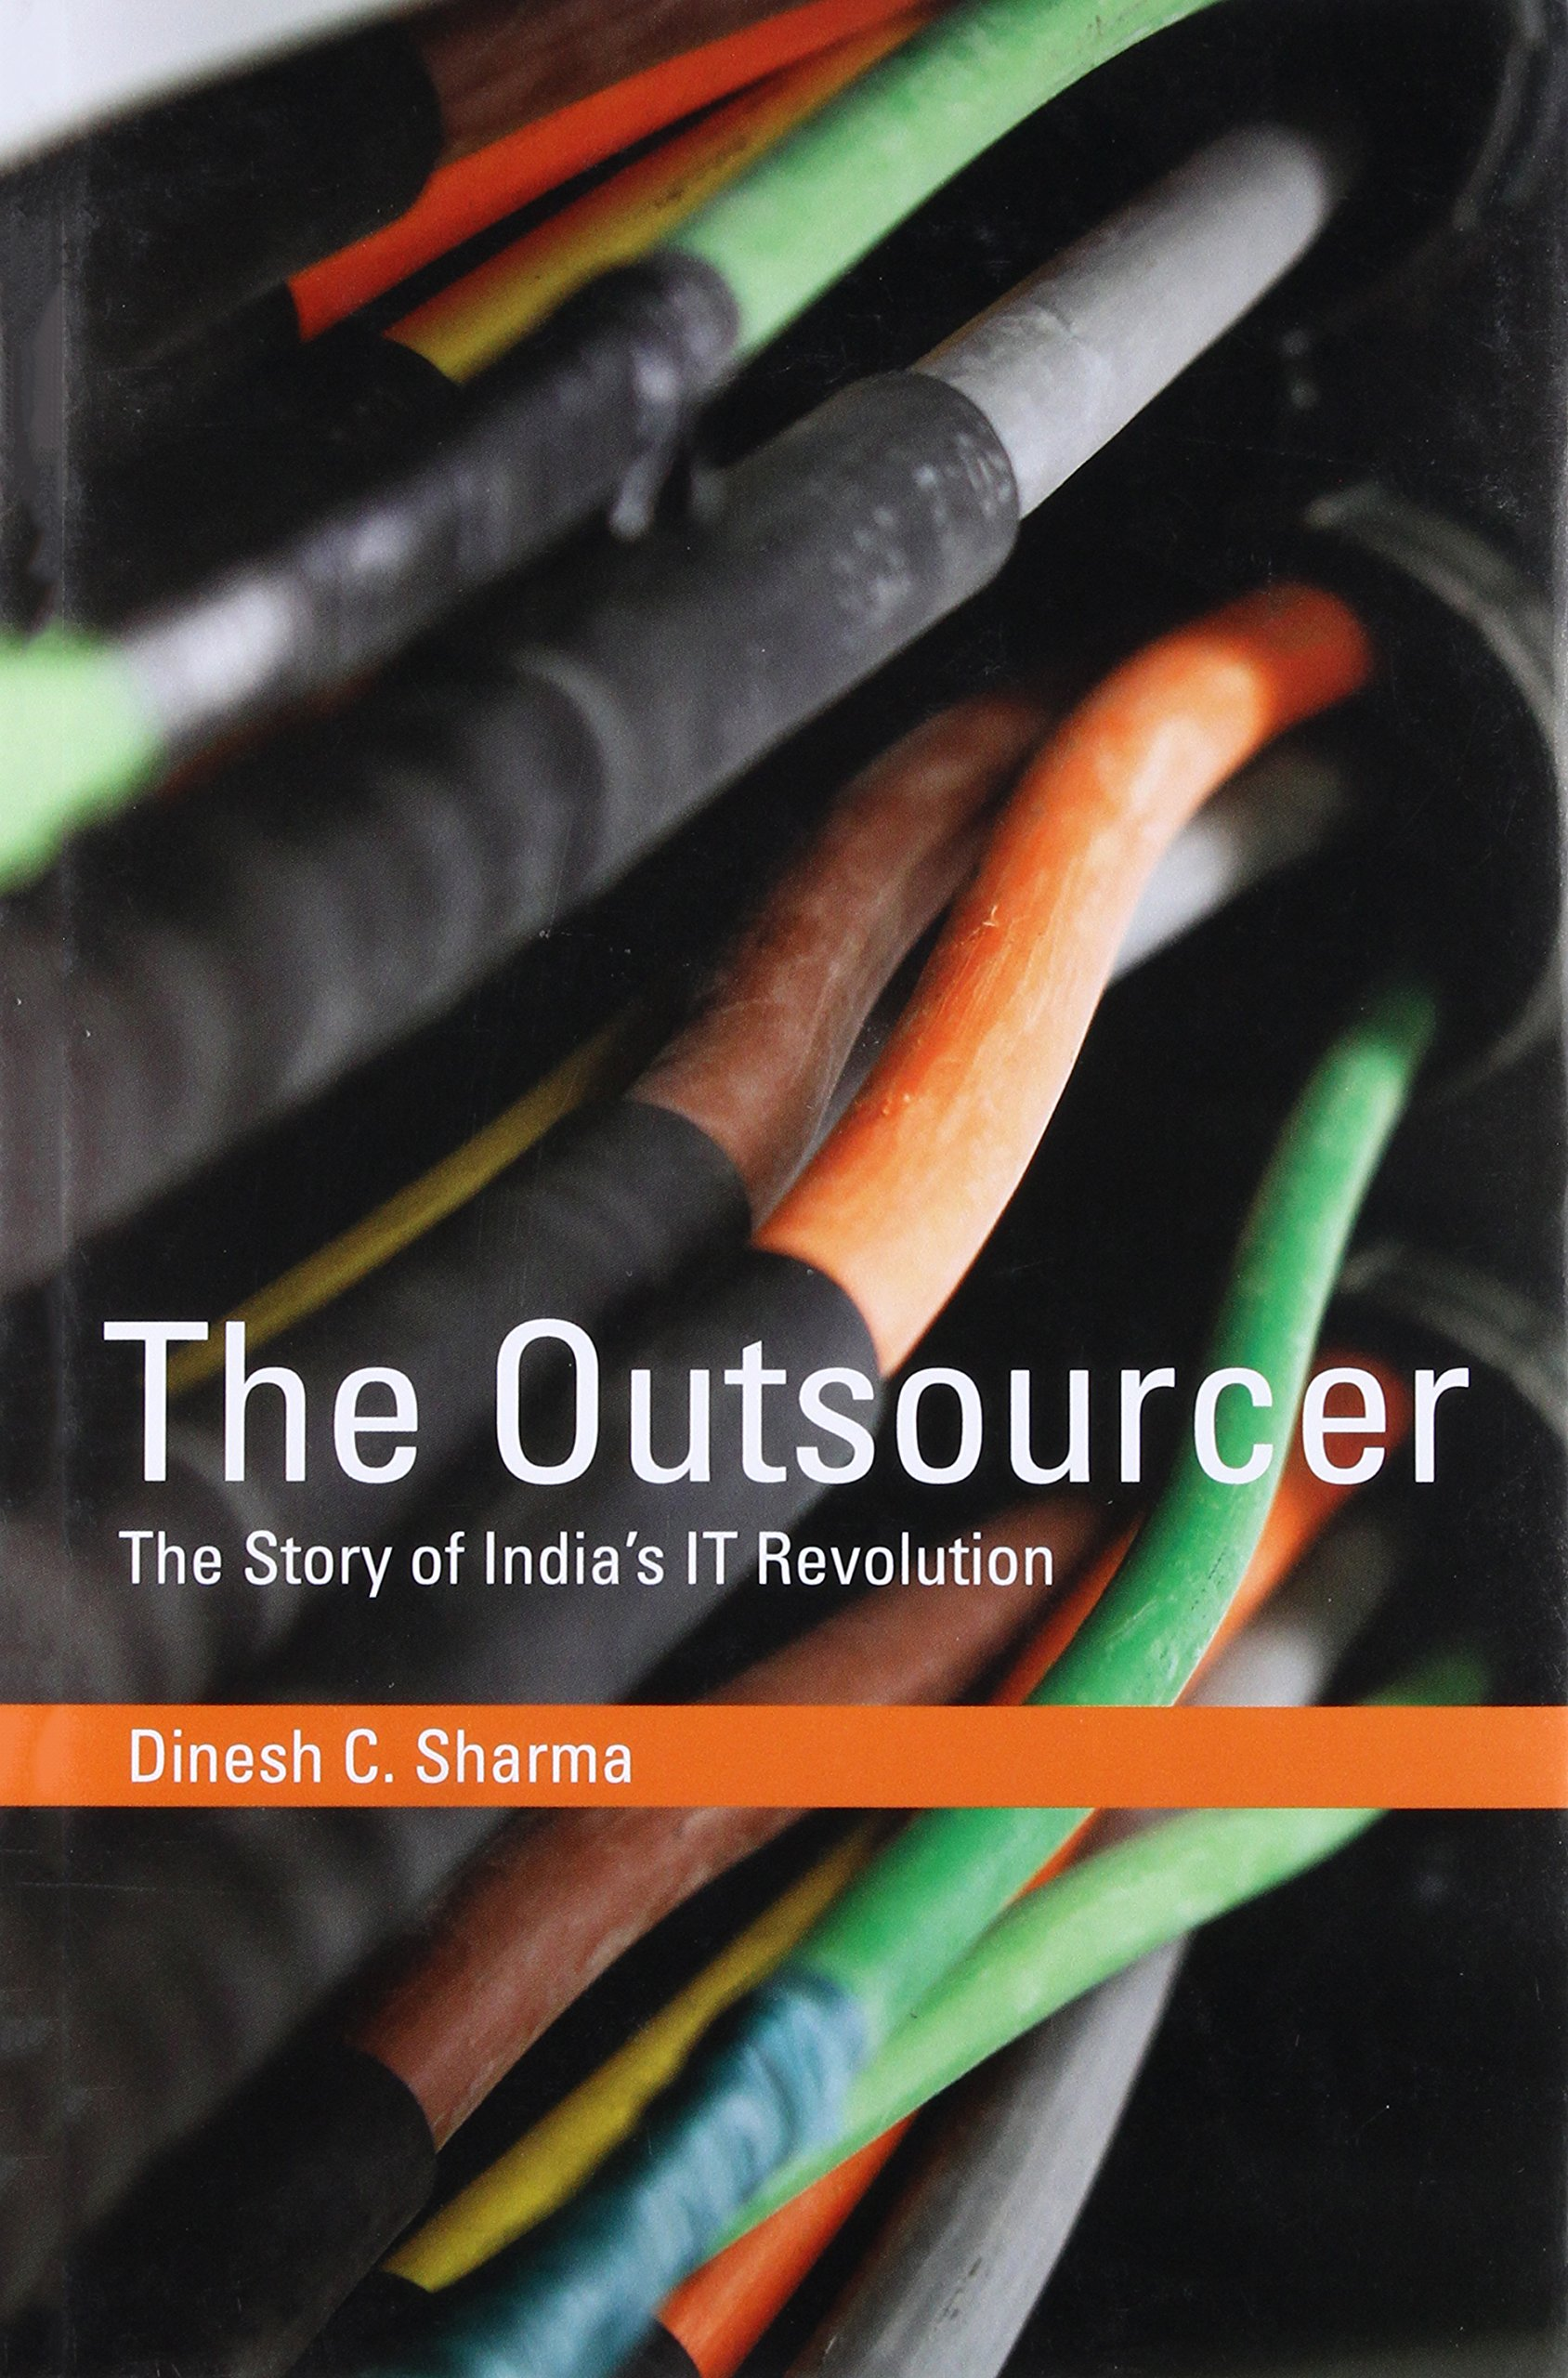 The Outsourcer: The Story of India's IT Revolution (History of Computing) by The MIT Press (Image #1)